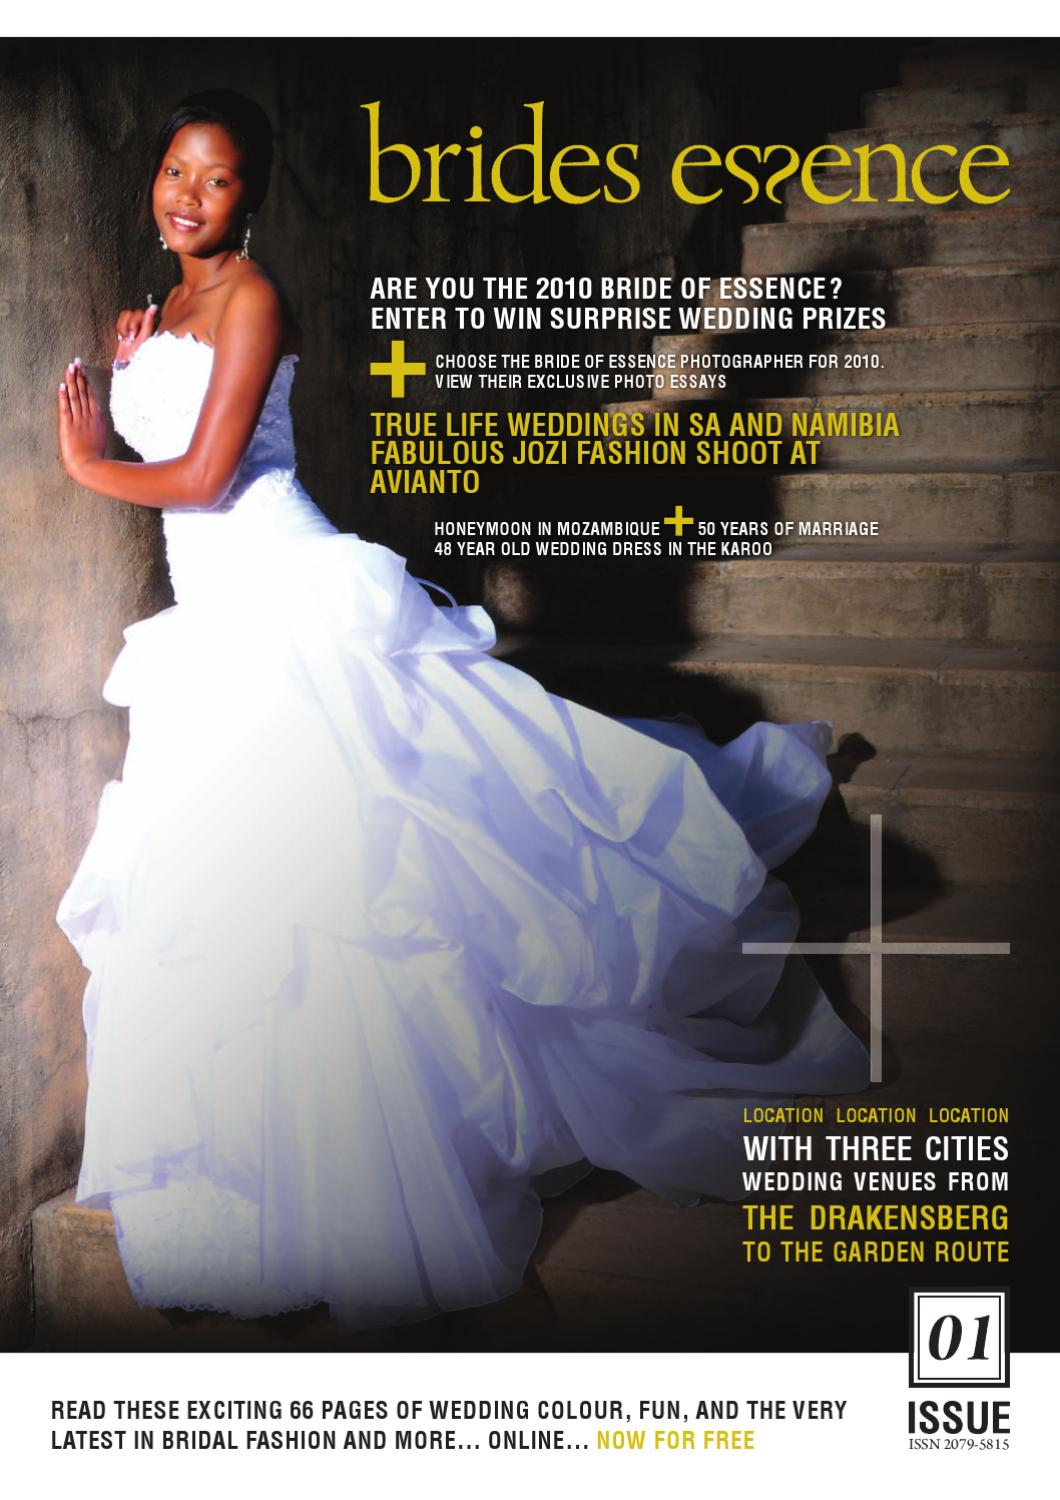 Brides Essence - Issue 01 by Brides Essence - issuu